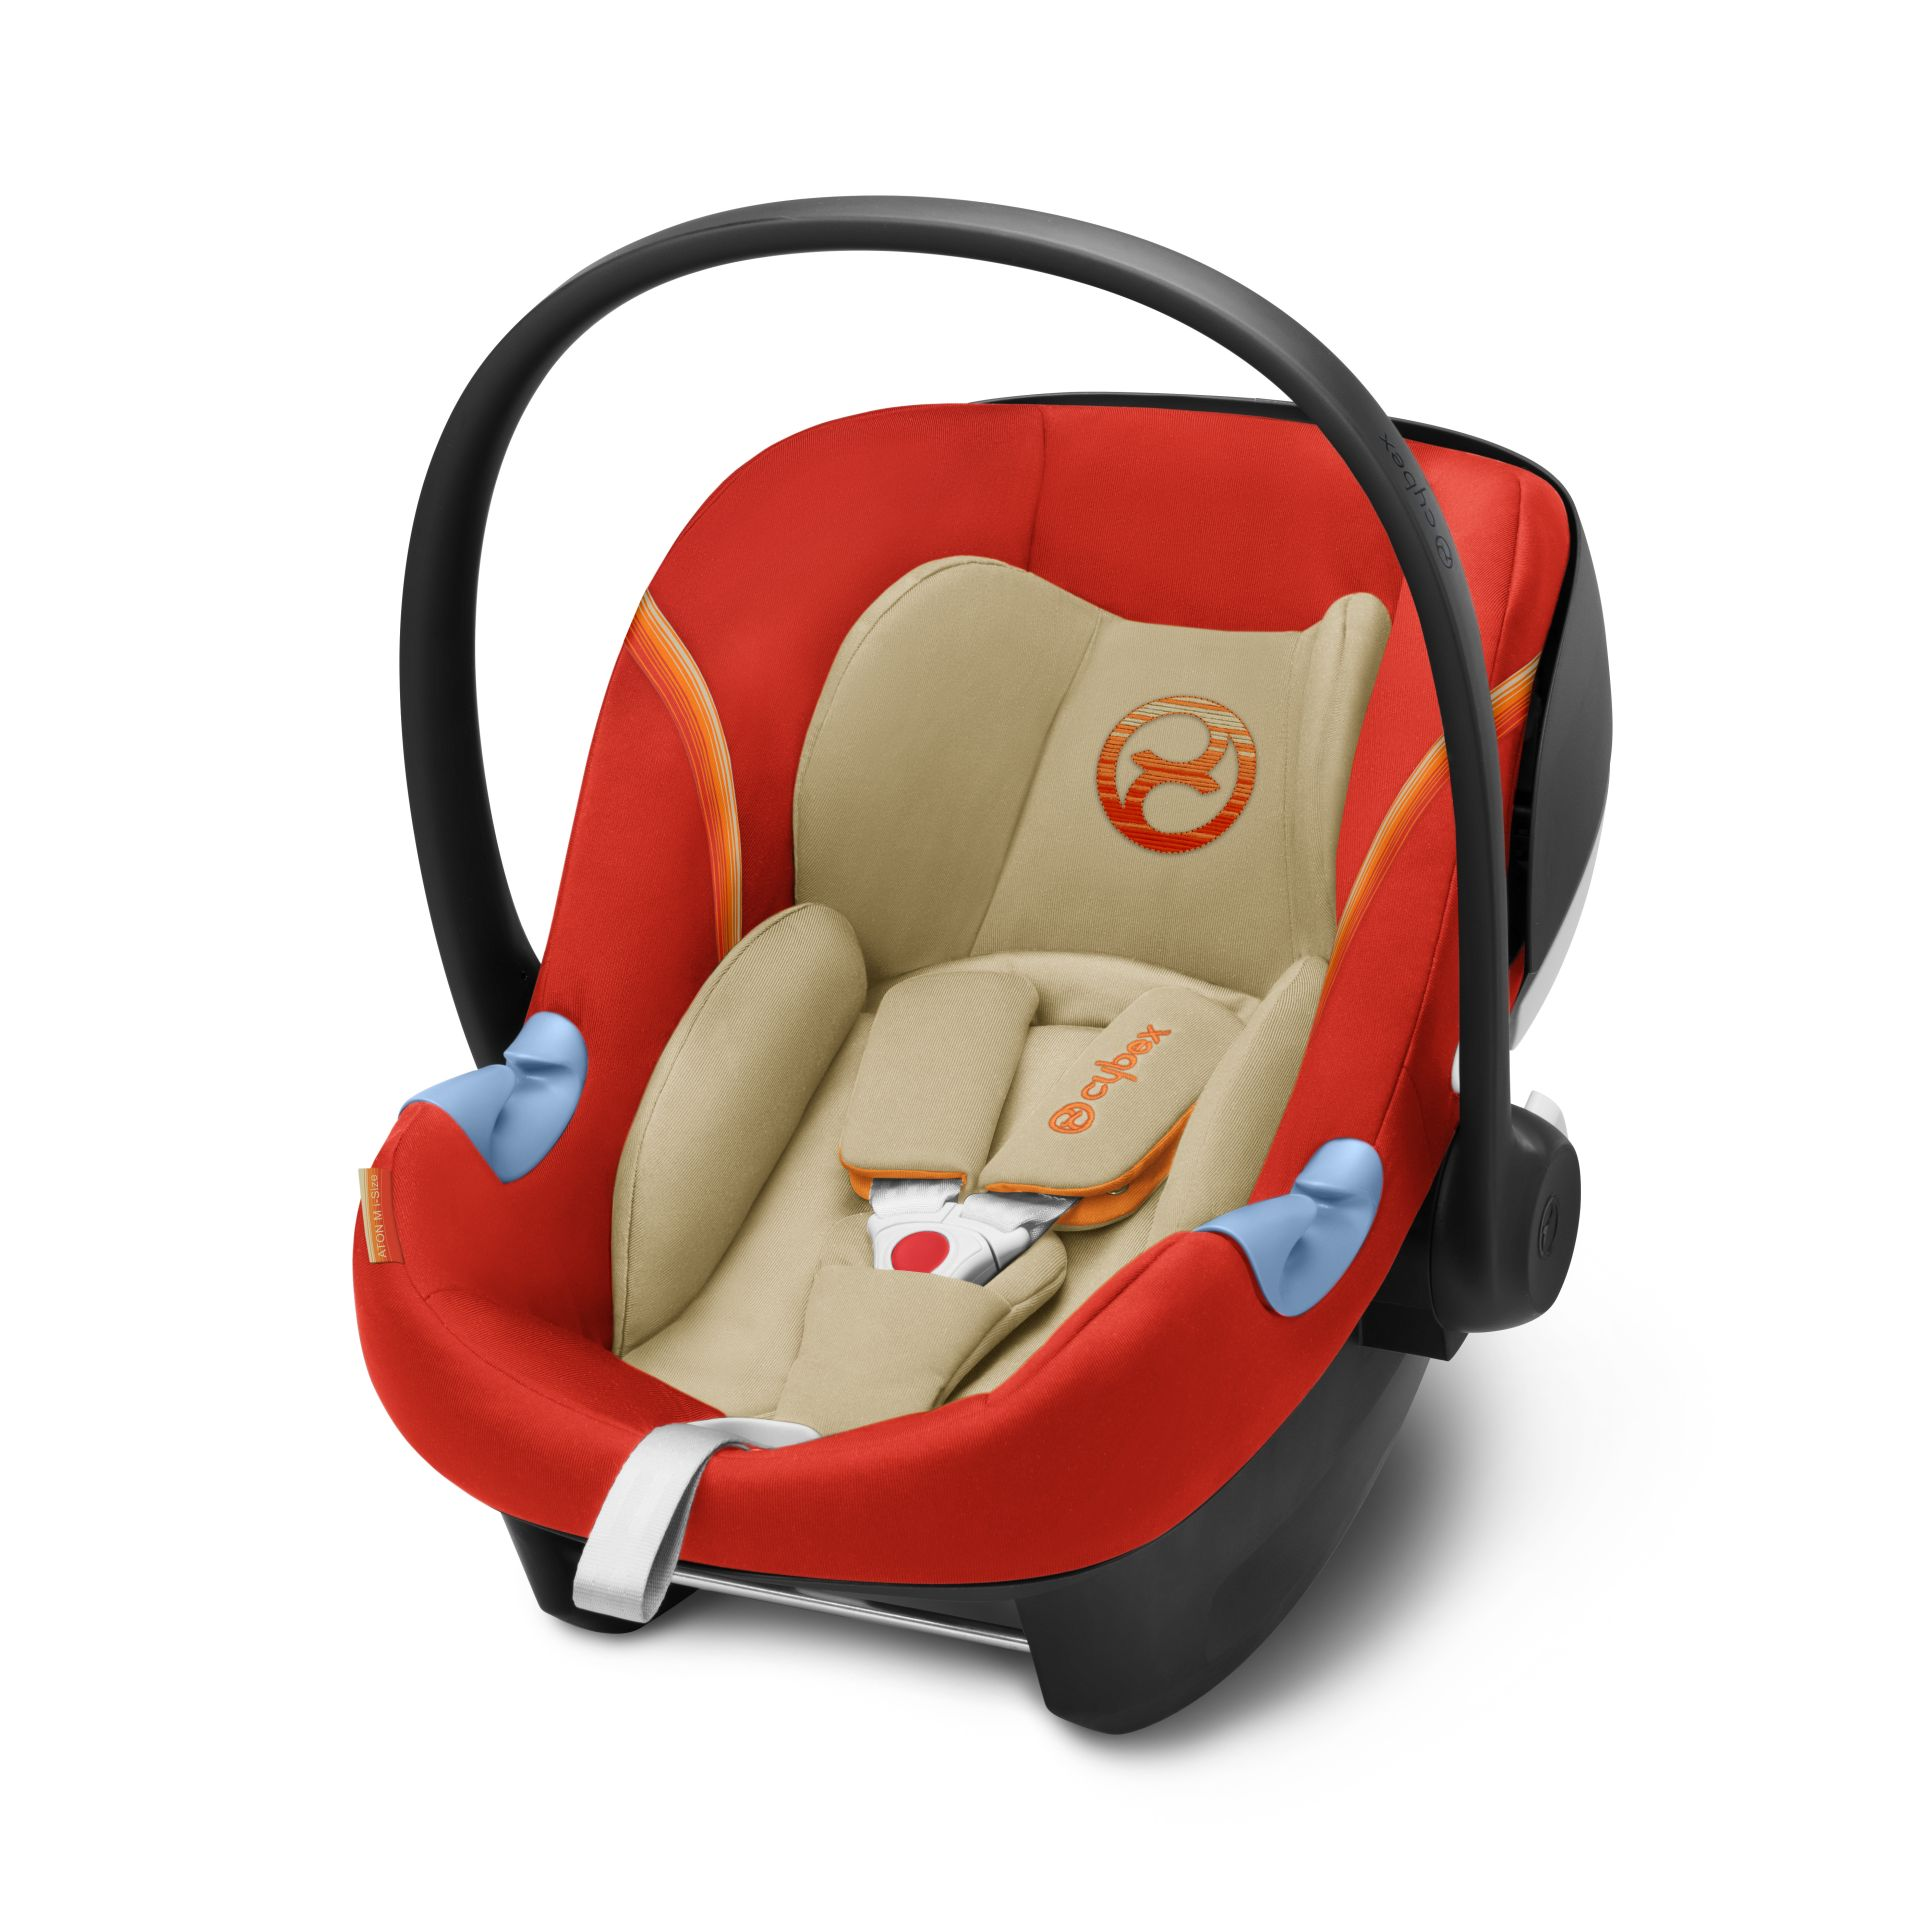 cybex infant car seat aton m i size 2018 autumn gold burnt red buy at kidsroom car seats. Black Bedroom Furniture Sets. Home Design Ideas